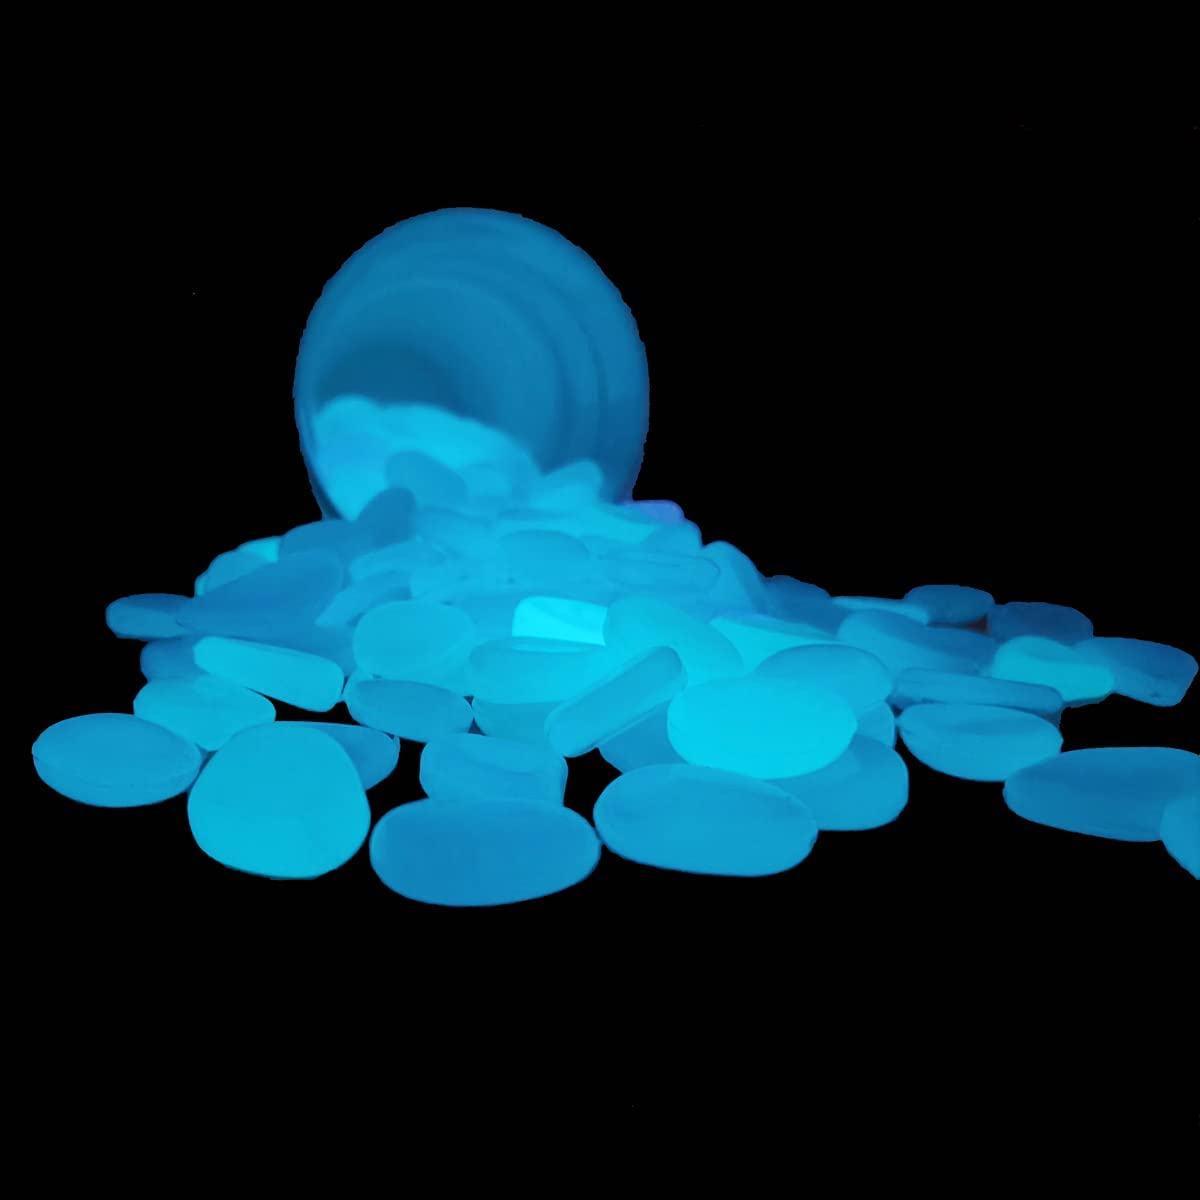 NOVAVOJO Glow in The Dark Garden Rocks 100Pcs Pebbles for Crafts and Outside Decorations,Fish Tanks,Flower Pots,Aquarium,Stepping Stone in Blue